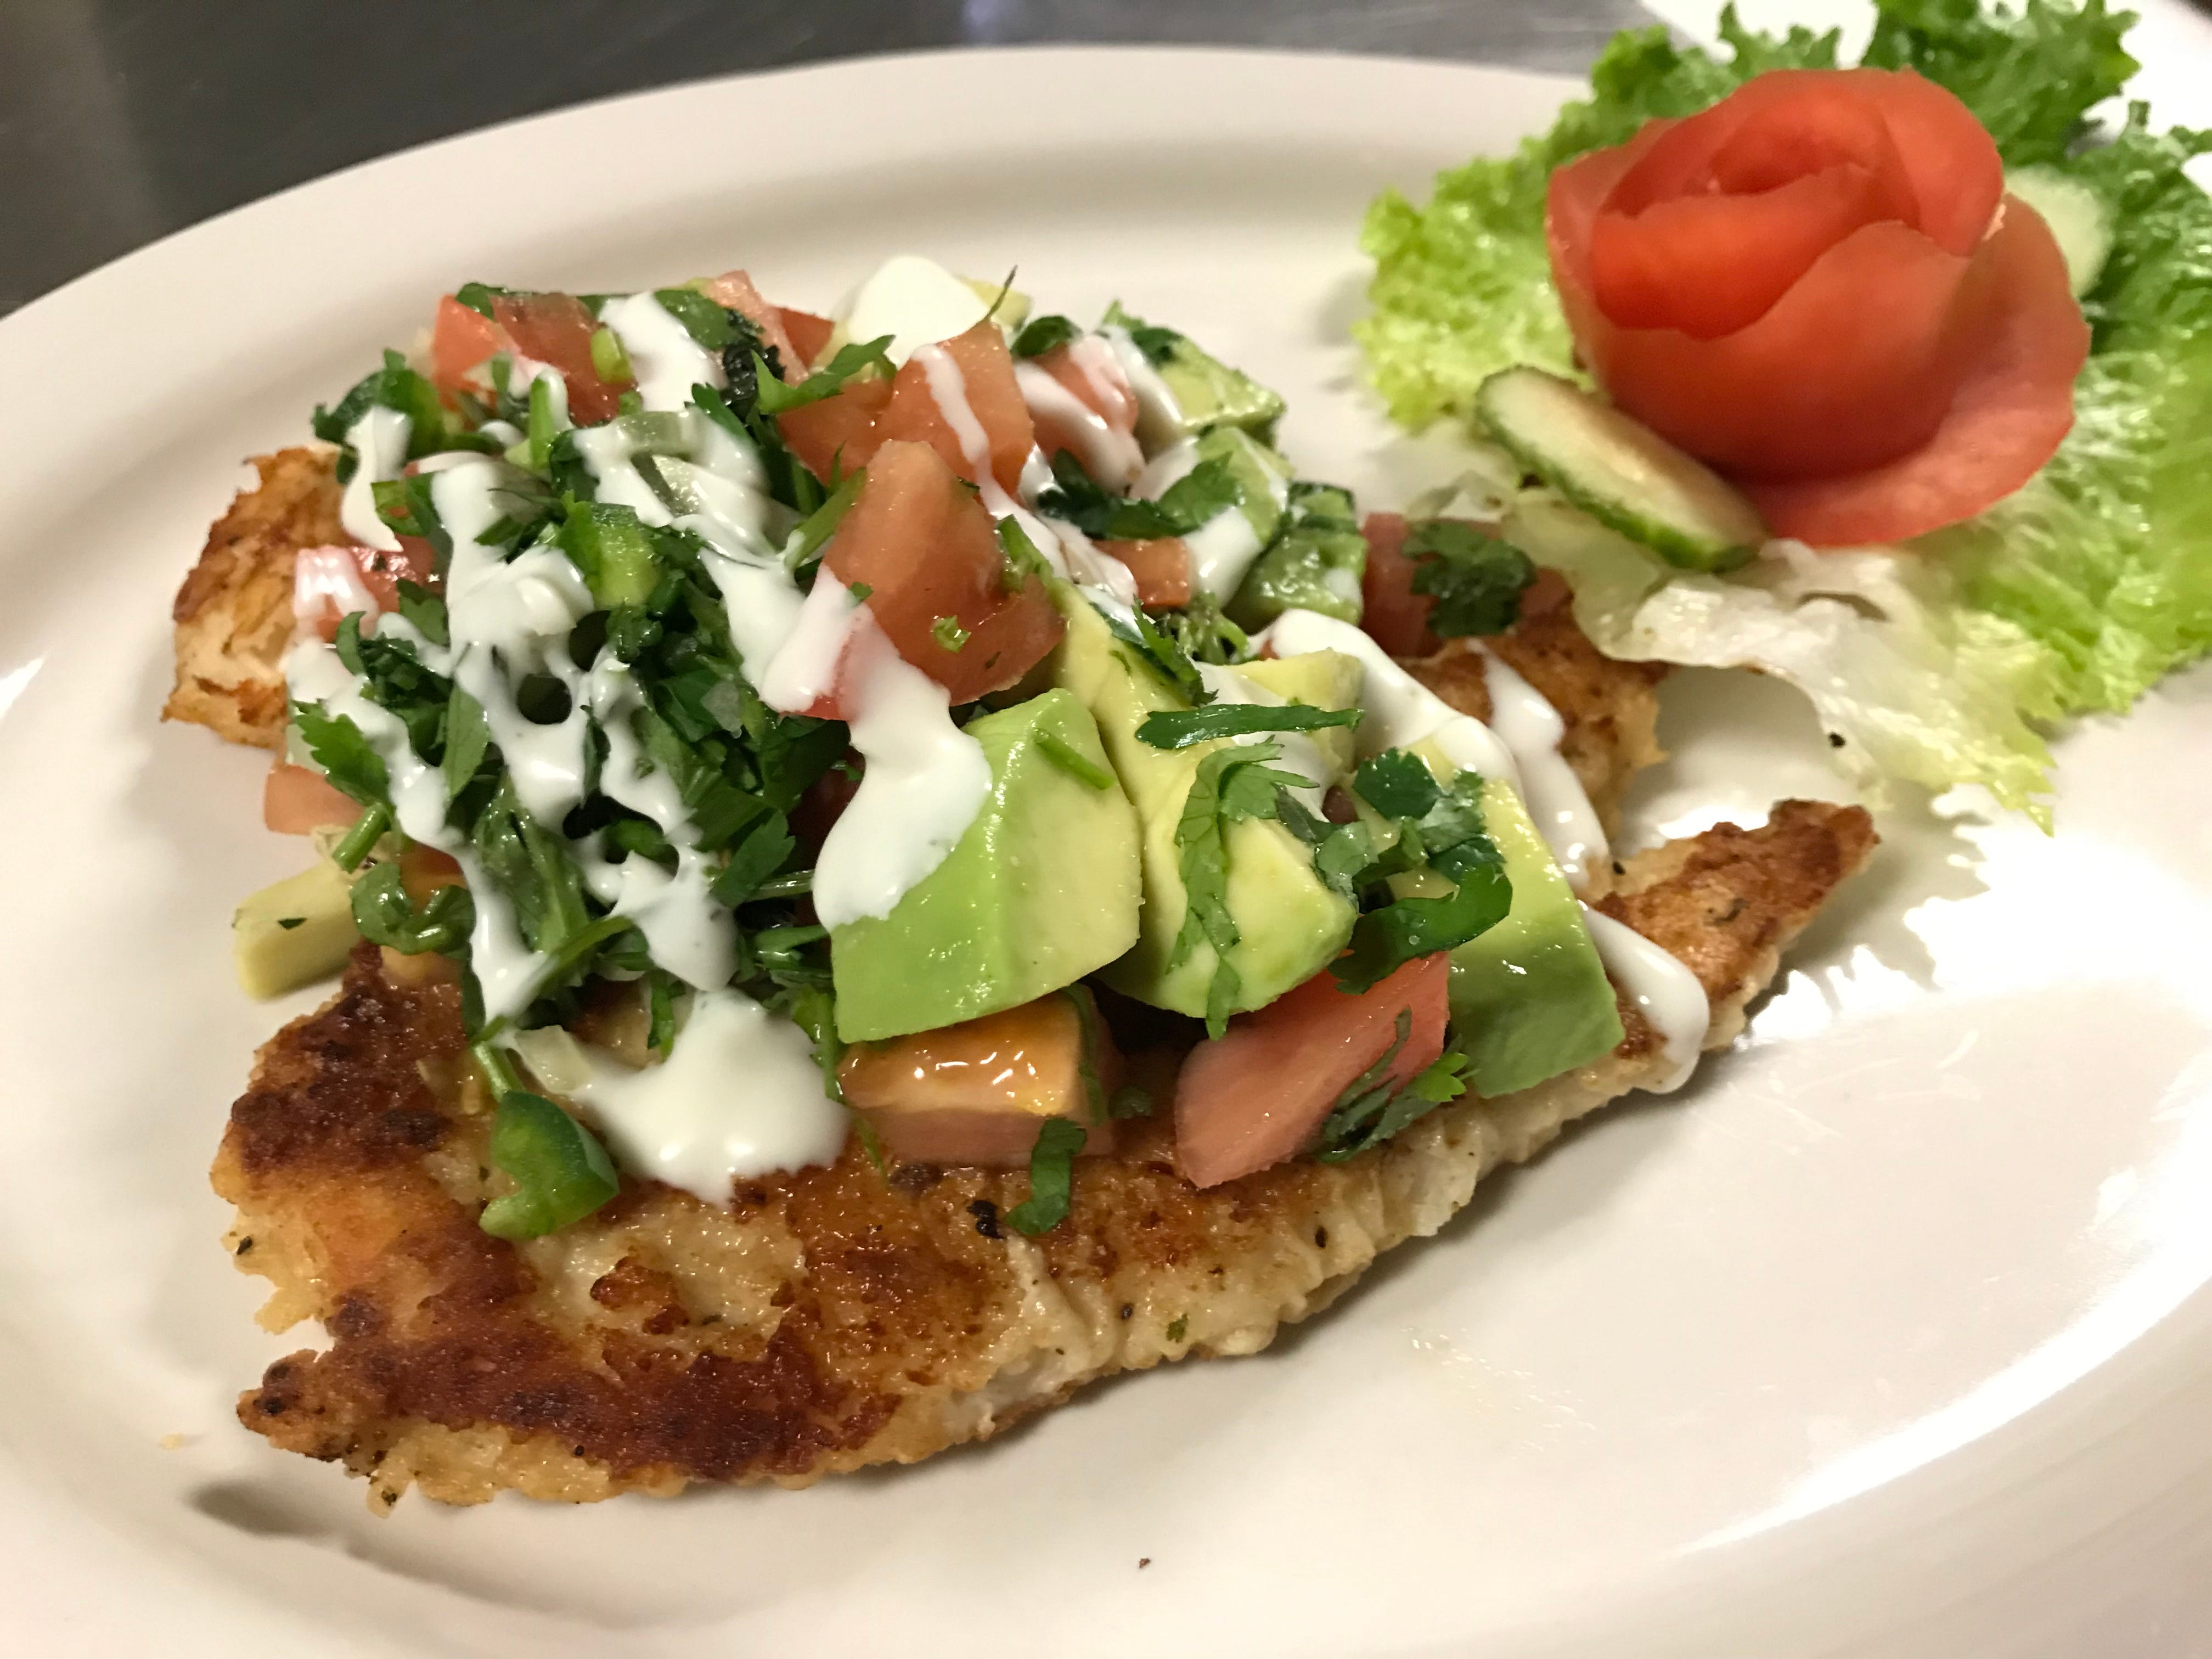 Amalia's Family Restaurant chef and co-owner Manuel Perez prides himself on serving fresh, made-to-order food like the California Chicken.